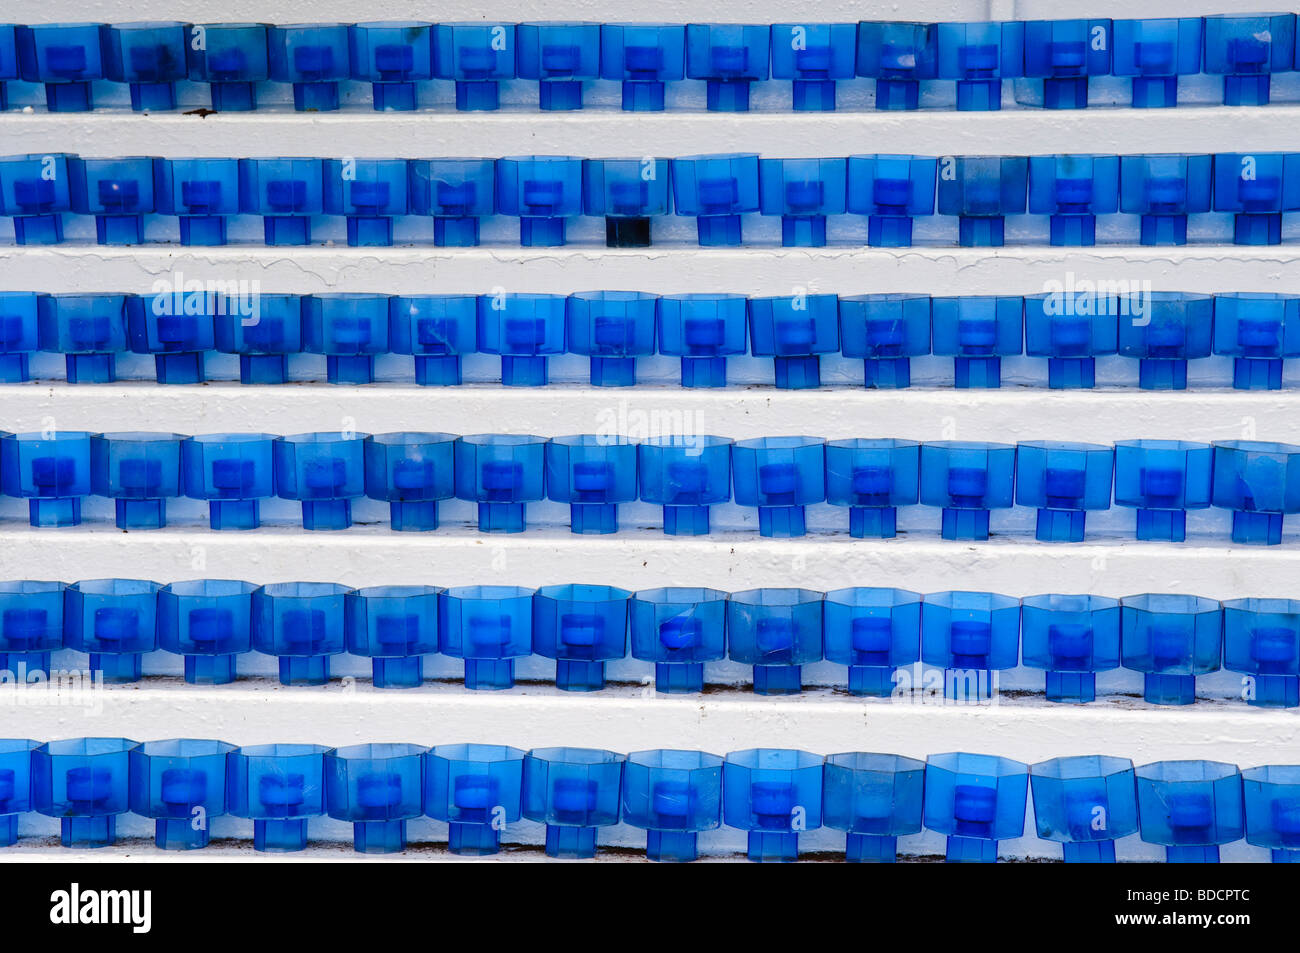 Rows of blue candle holders on shelves in a modern church - Stock Image